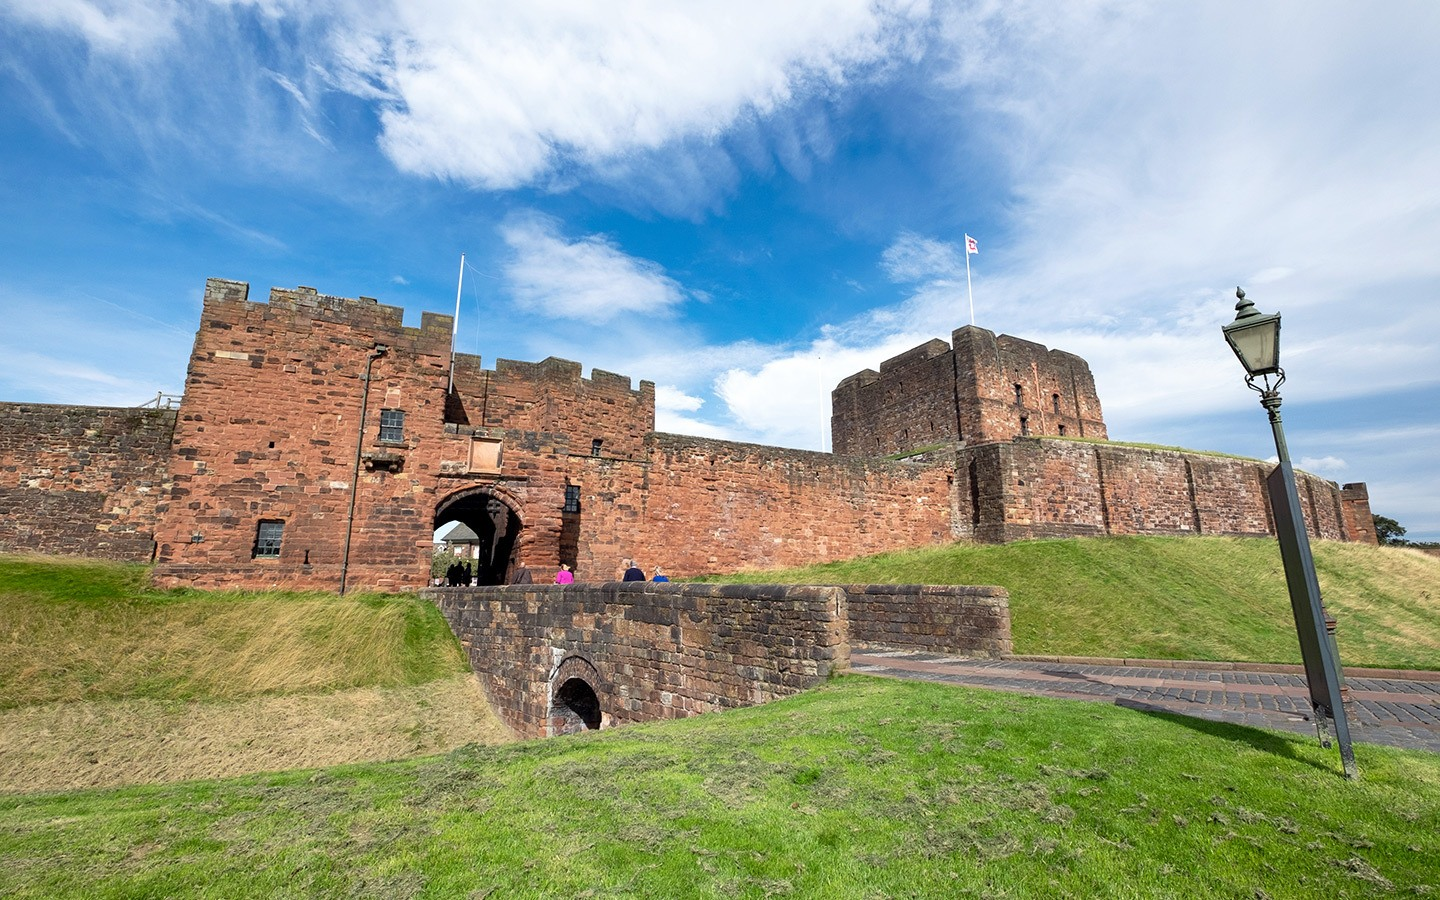 The gates of Carlisle Castle in north-west England